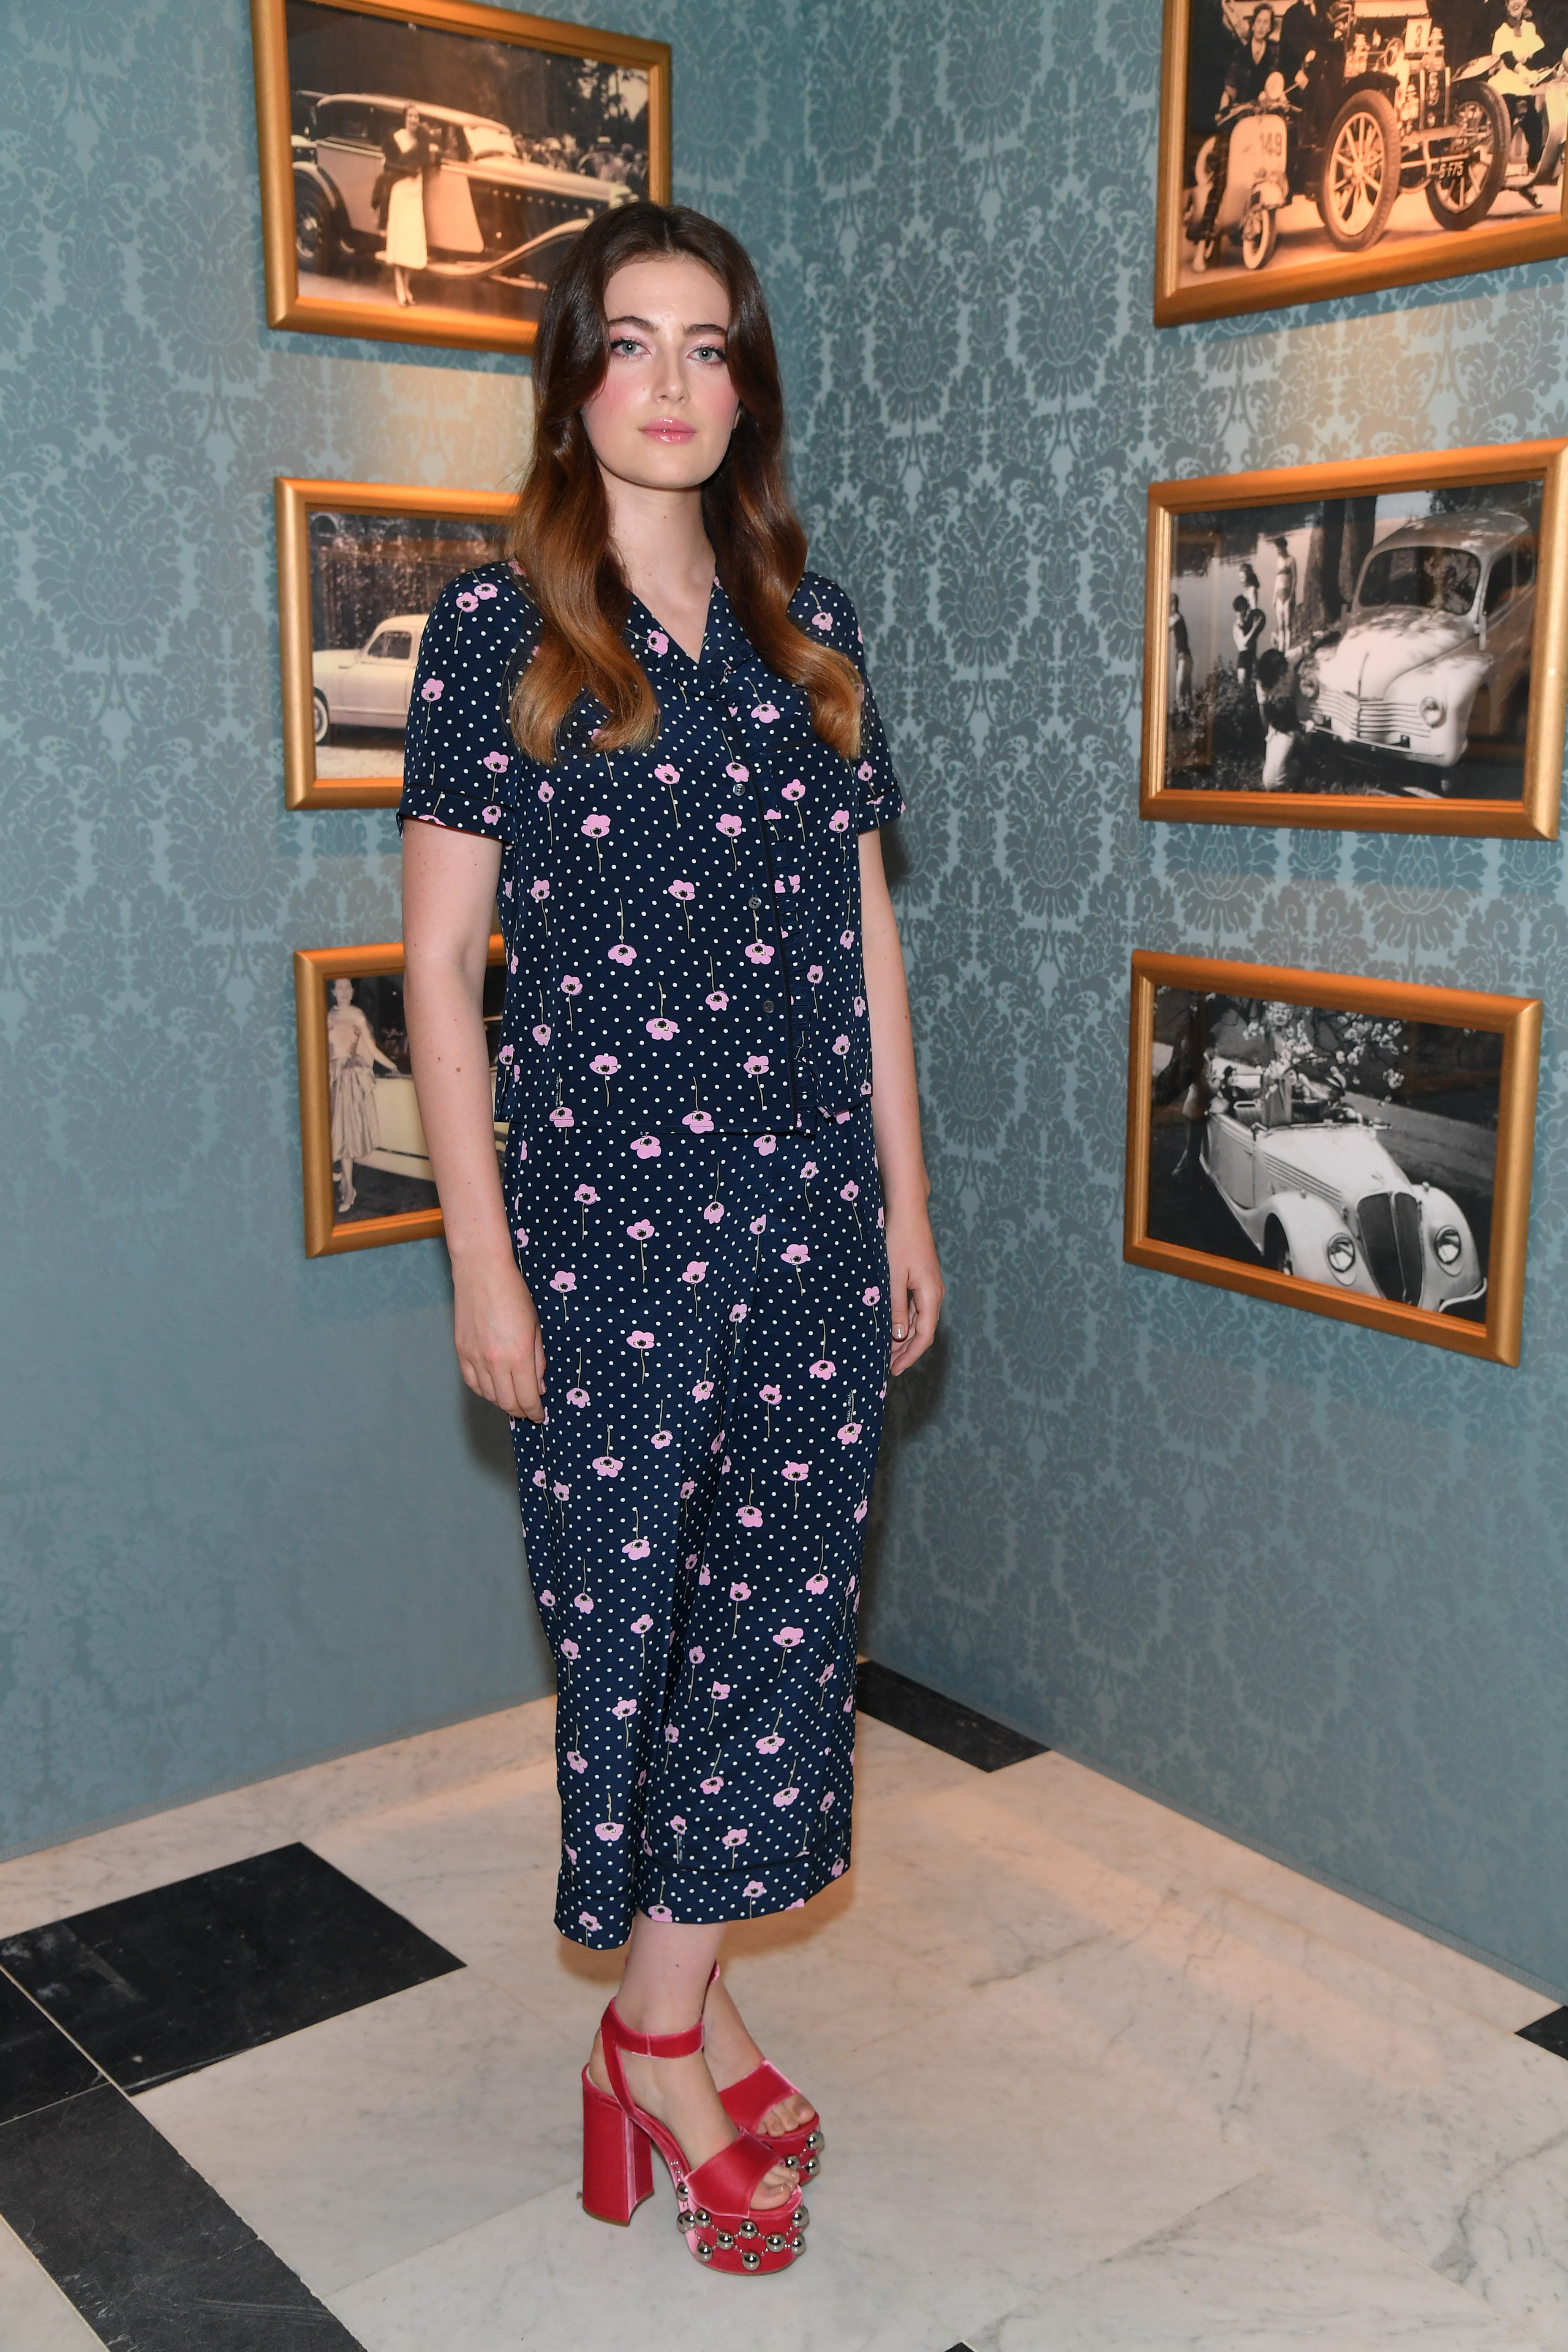 PARIS, FRANCE - JULY 02:  Millie Brady attends Miu Miu Cruise Collection show as part of Haute Couture Paris Fashion Week on July 2, 2017 in Paris, France.  (Photo by Dominique Charriau/Getty Images for Miu Miu) *** Local Caption *** Millie Brady